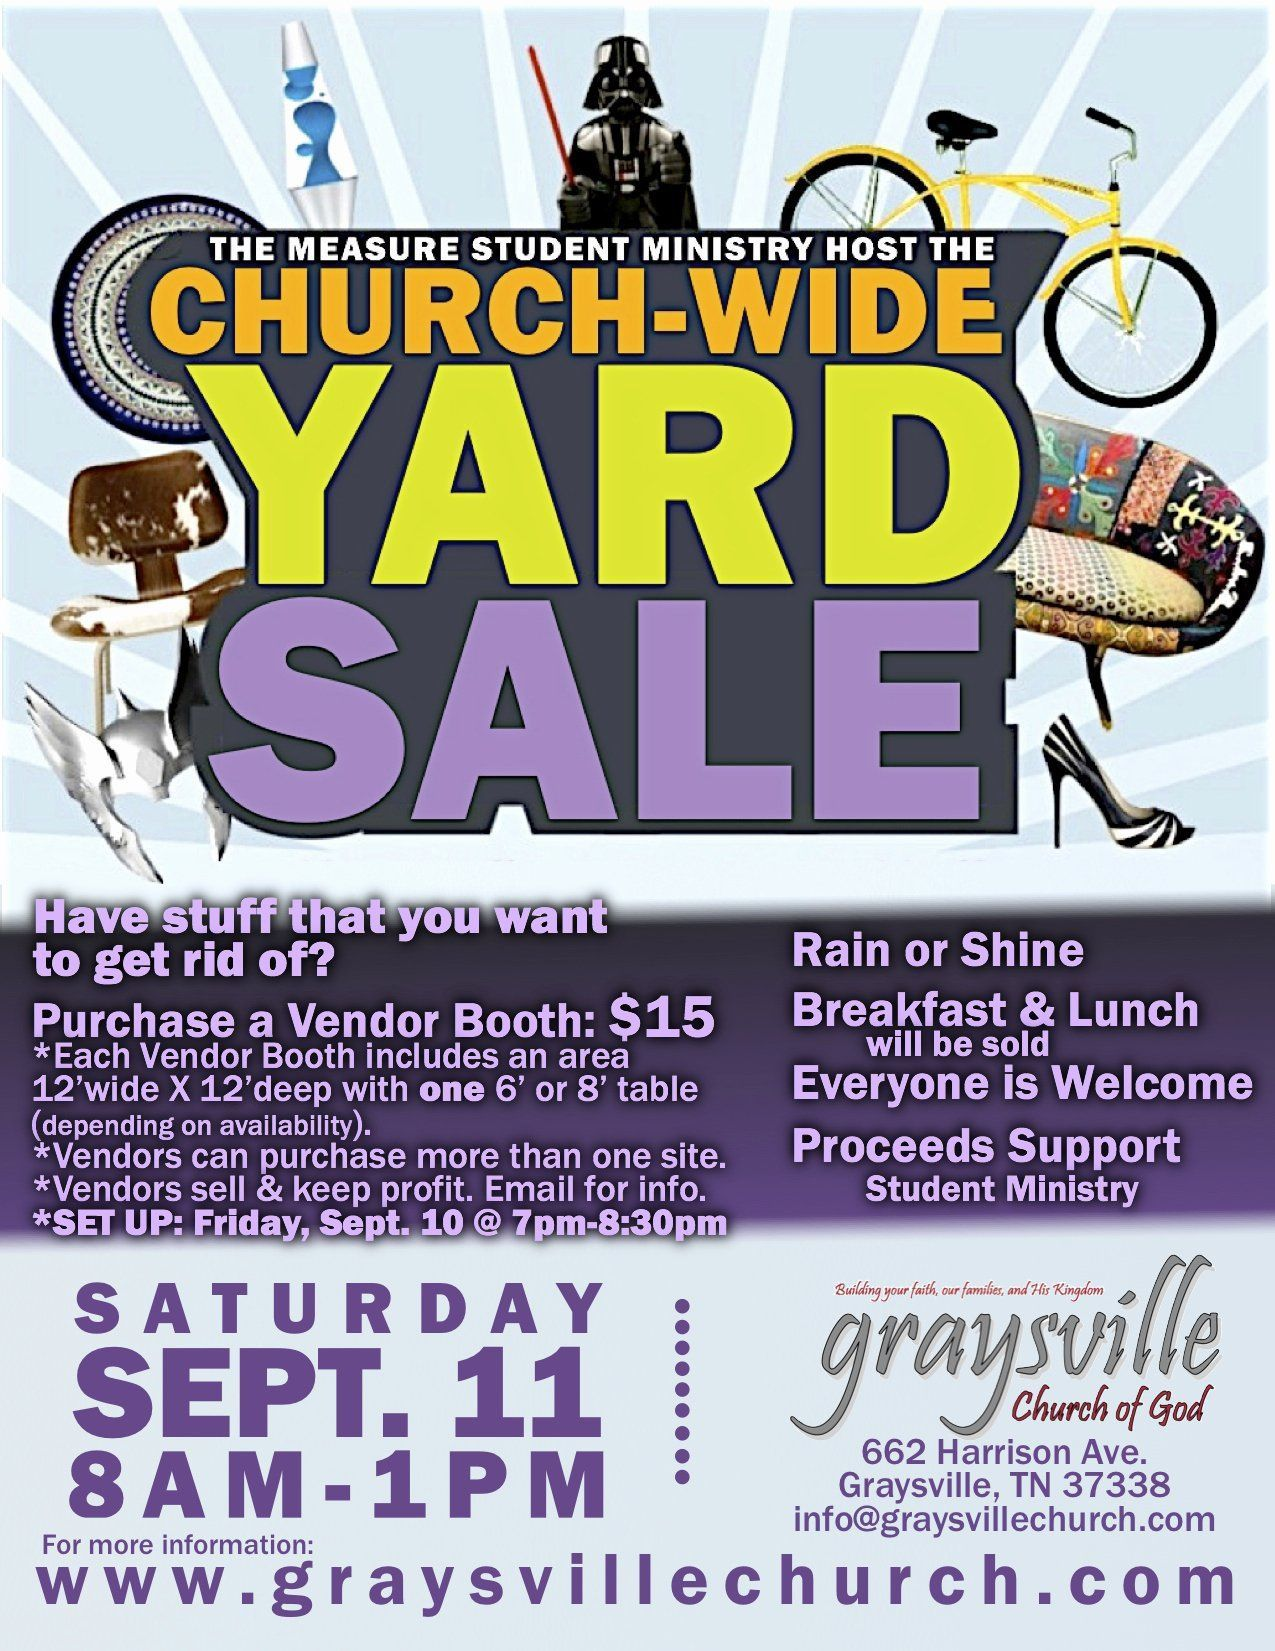 001 Fascinating Yard Sale Flyer Template Design  Free Garage Microsoft WordFull